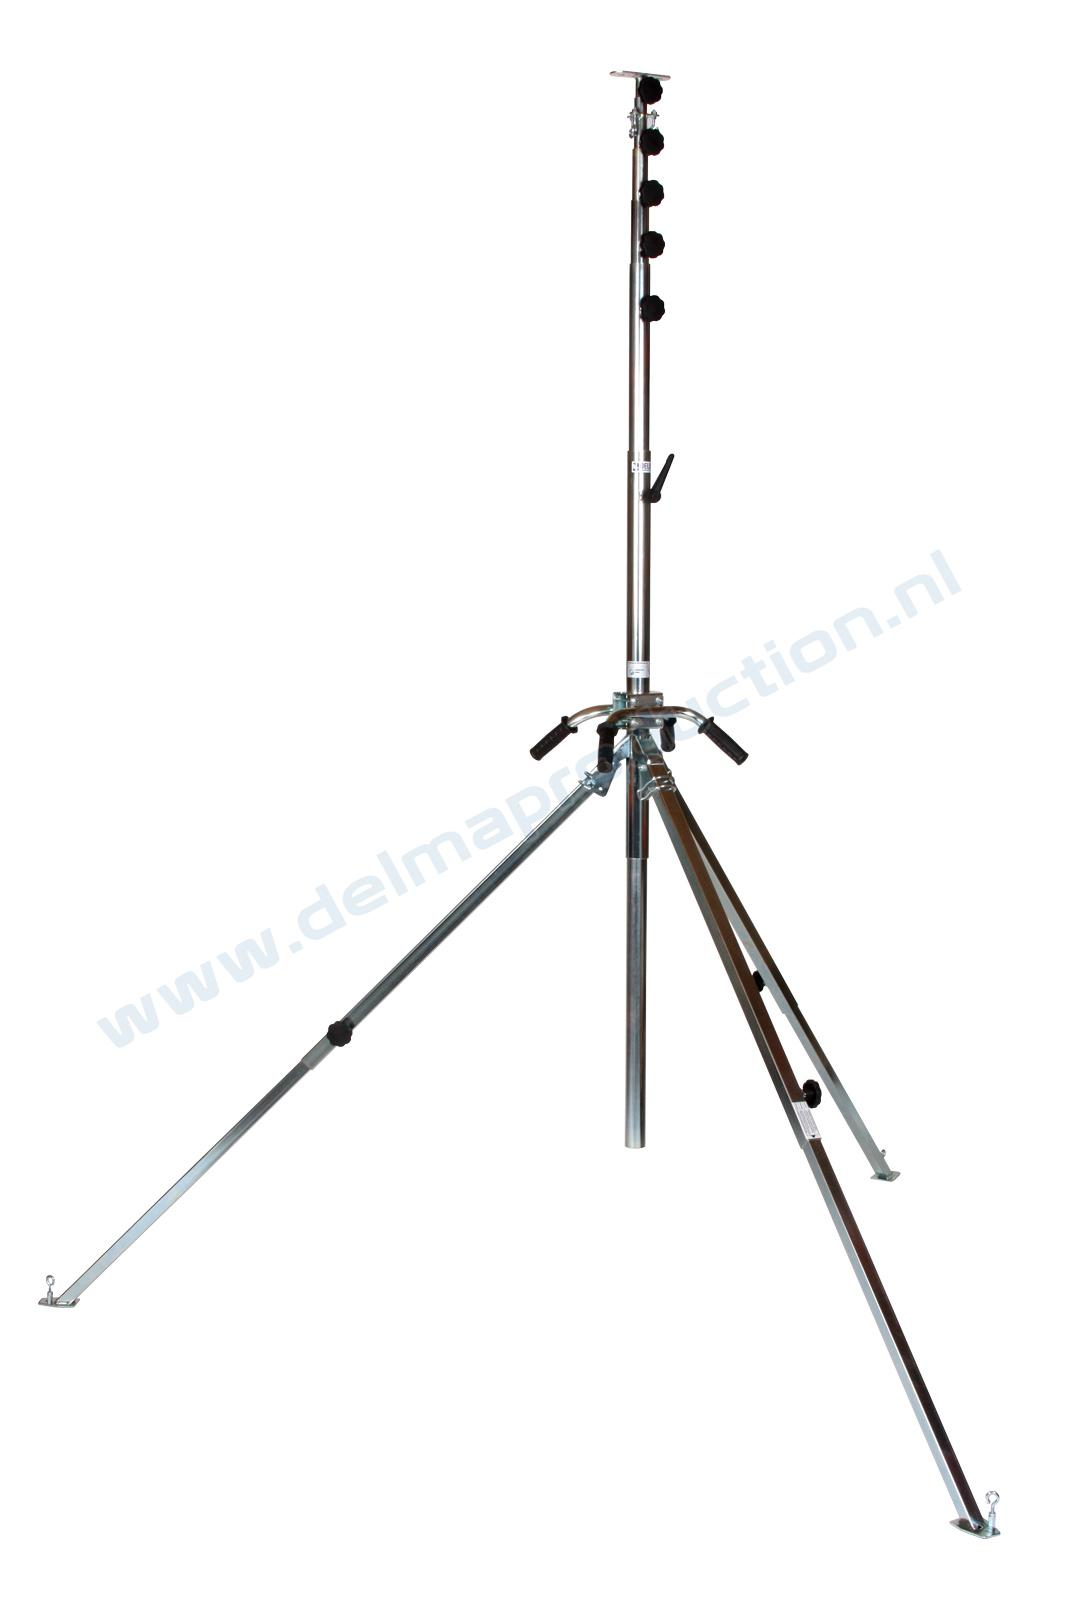 6-parts tripod stand, adjustable undercarriage, quick change system with bracket + M8  (1)